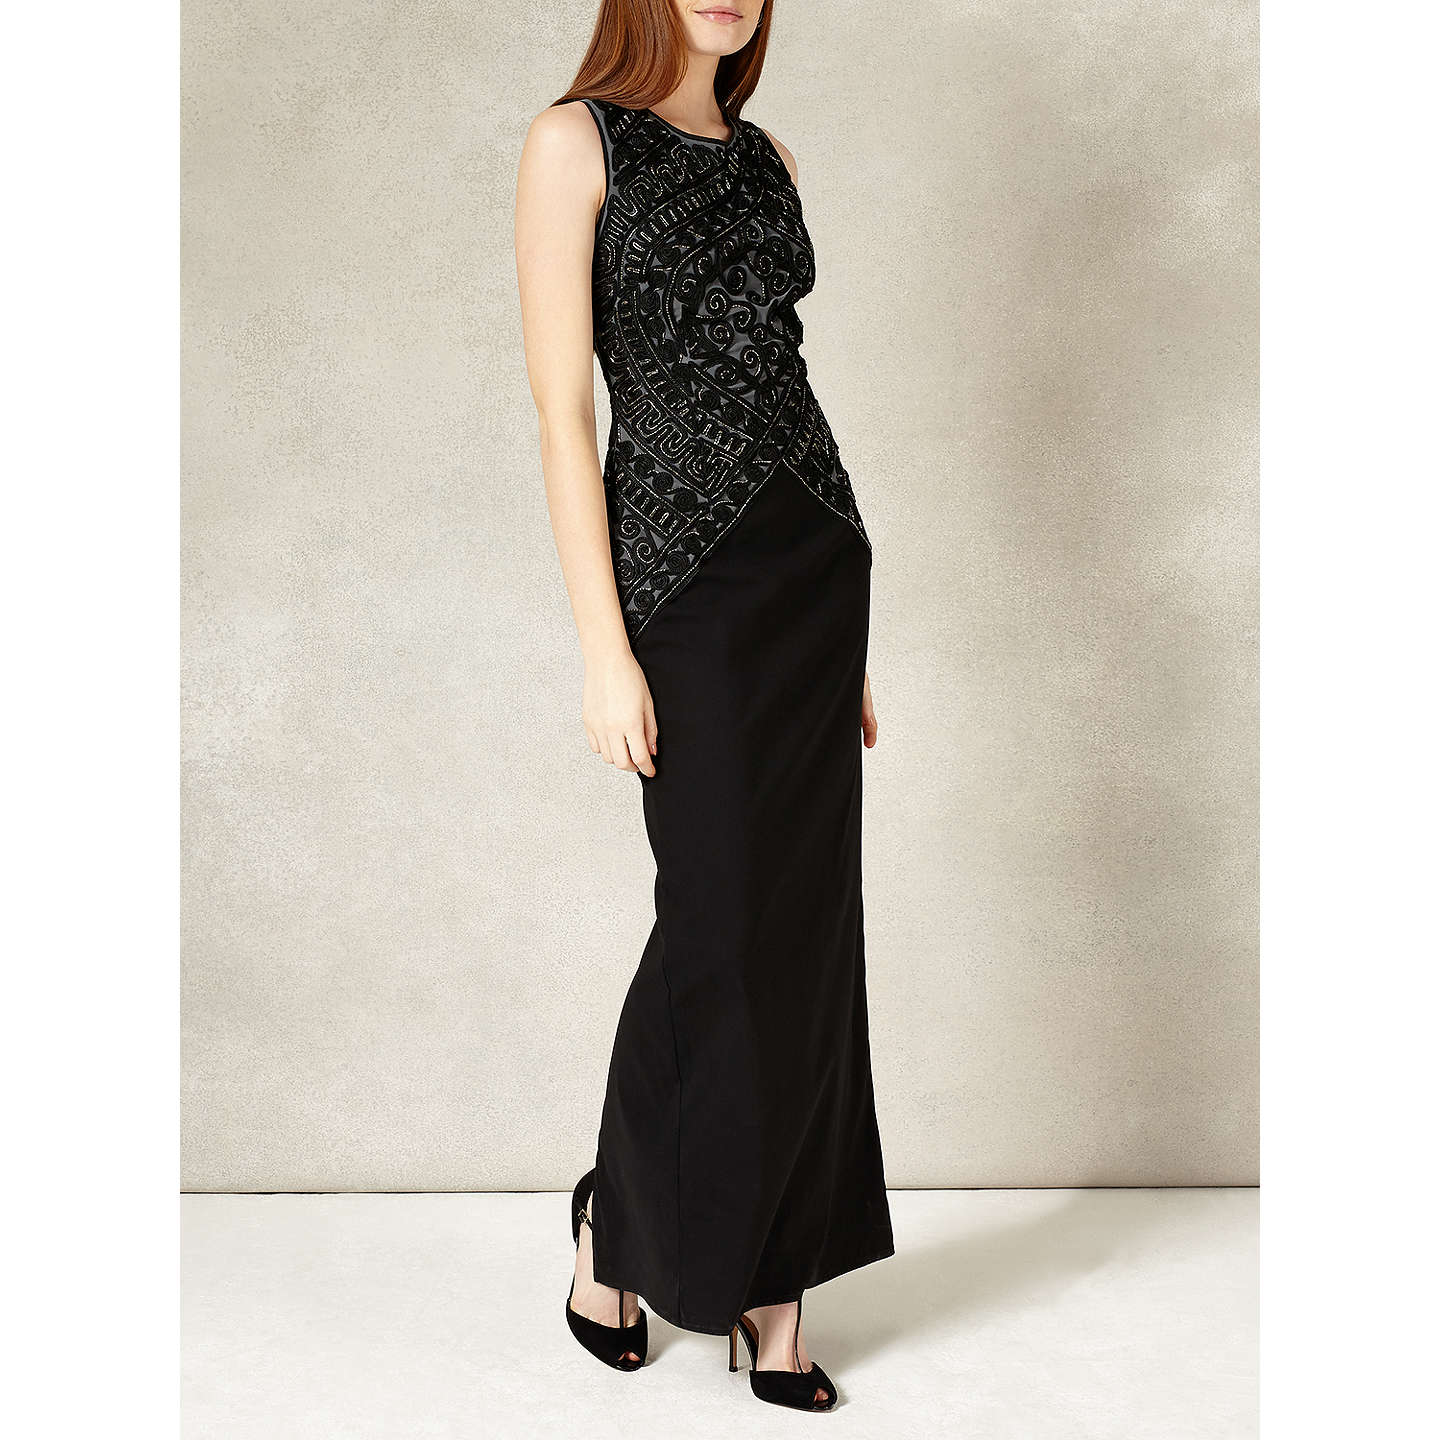 Phase Eight Collection 8 Embry Full Length Dress, Black